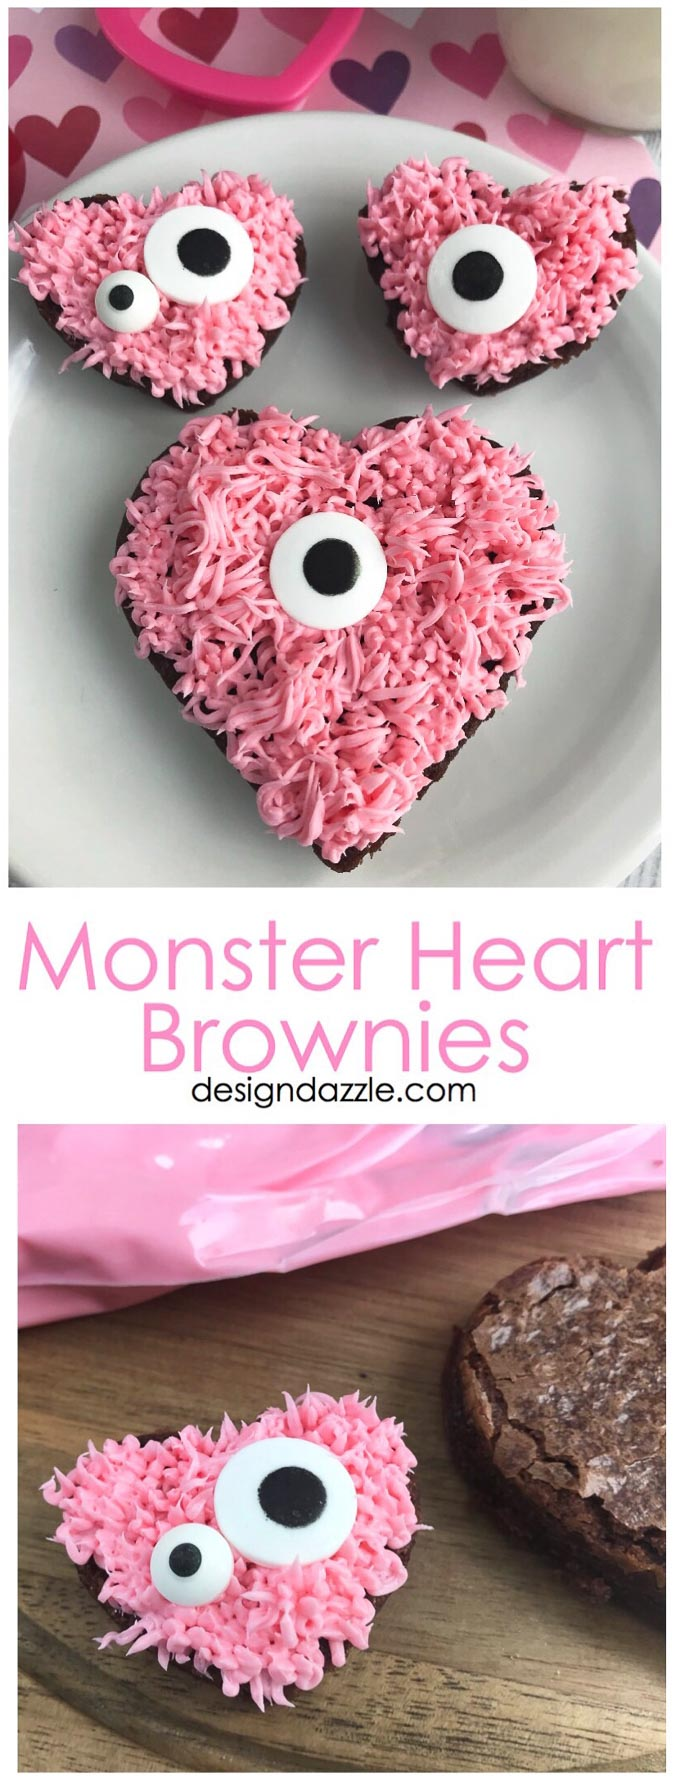 Monster heart brownies collage 1